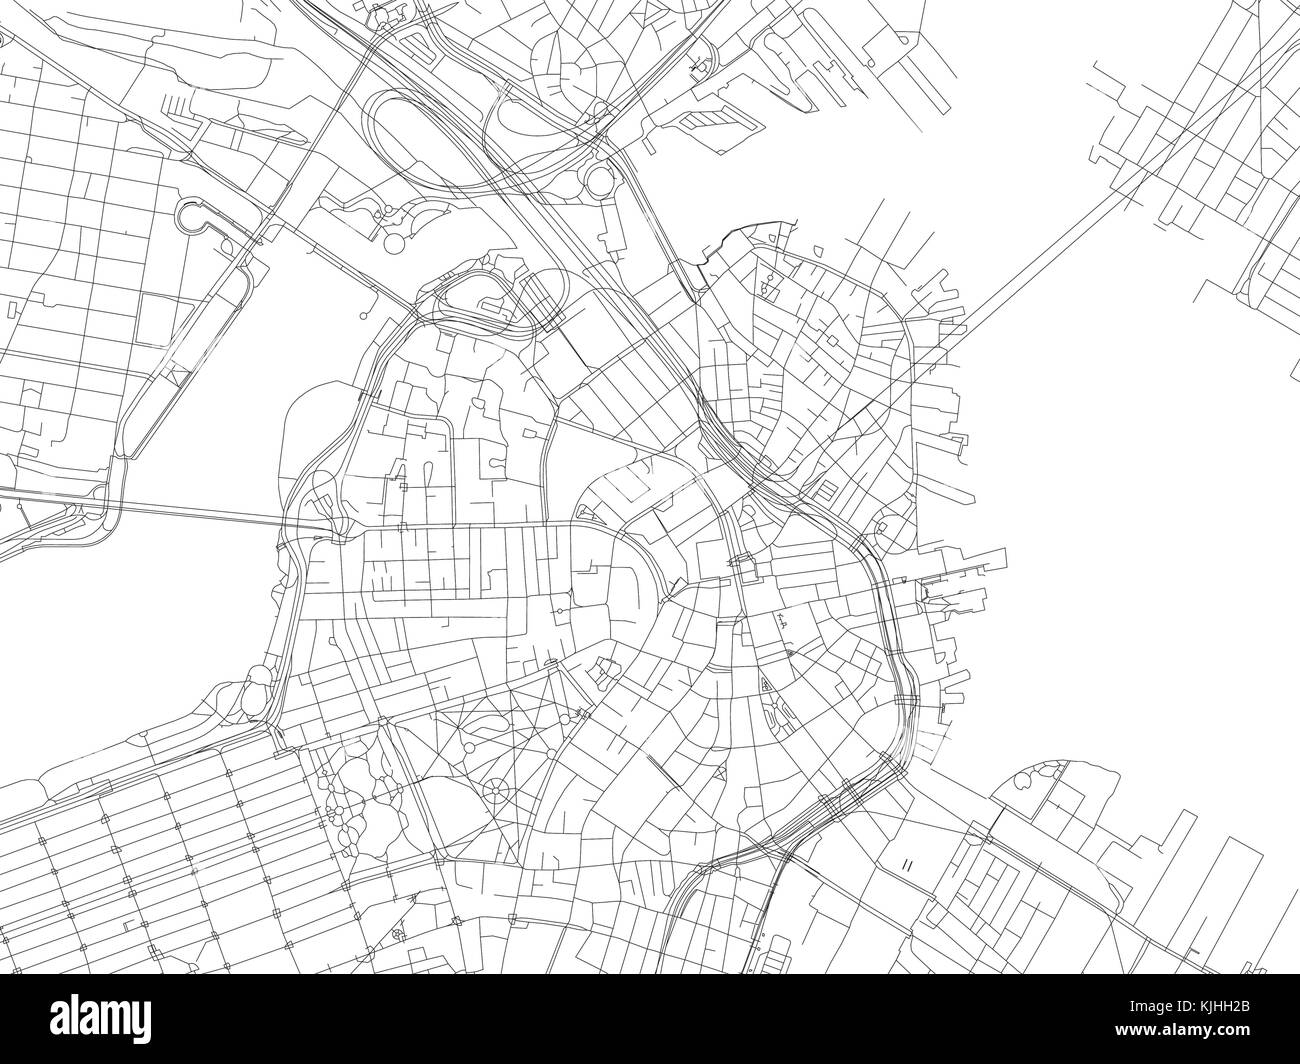 Streets of Boston, city map, Massachusetts, United States. Street ...